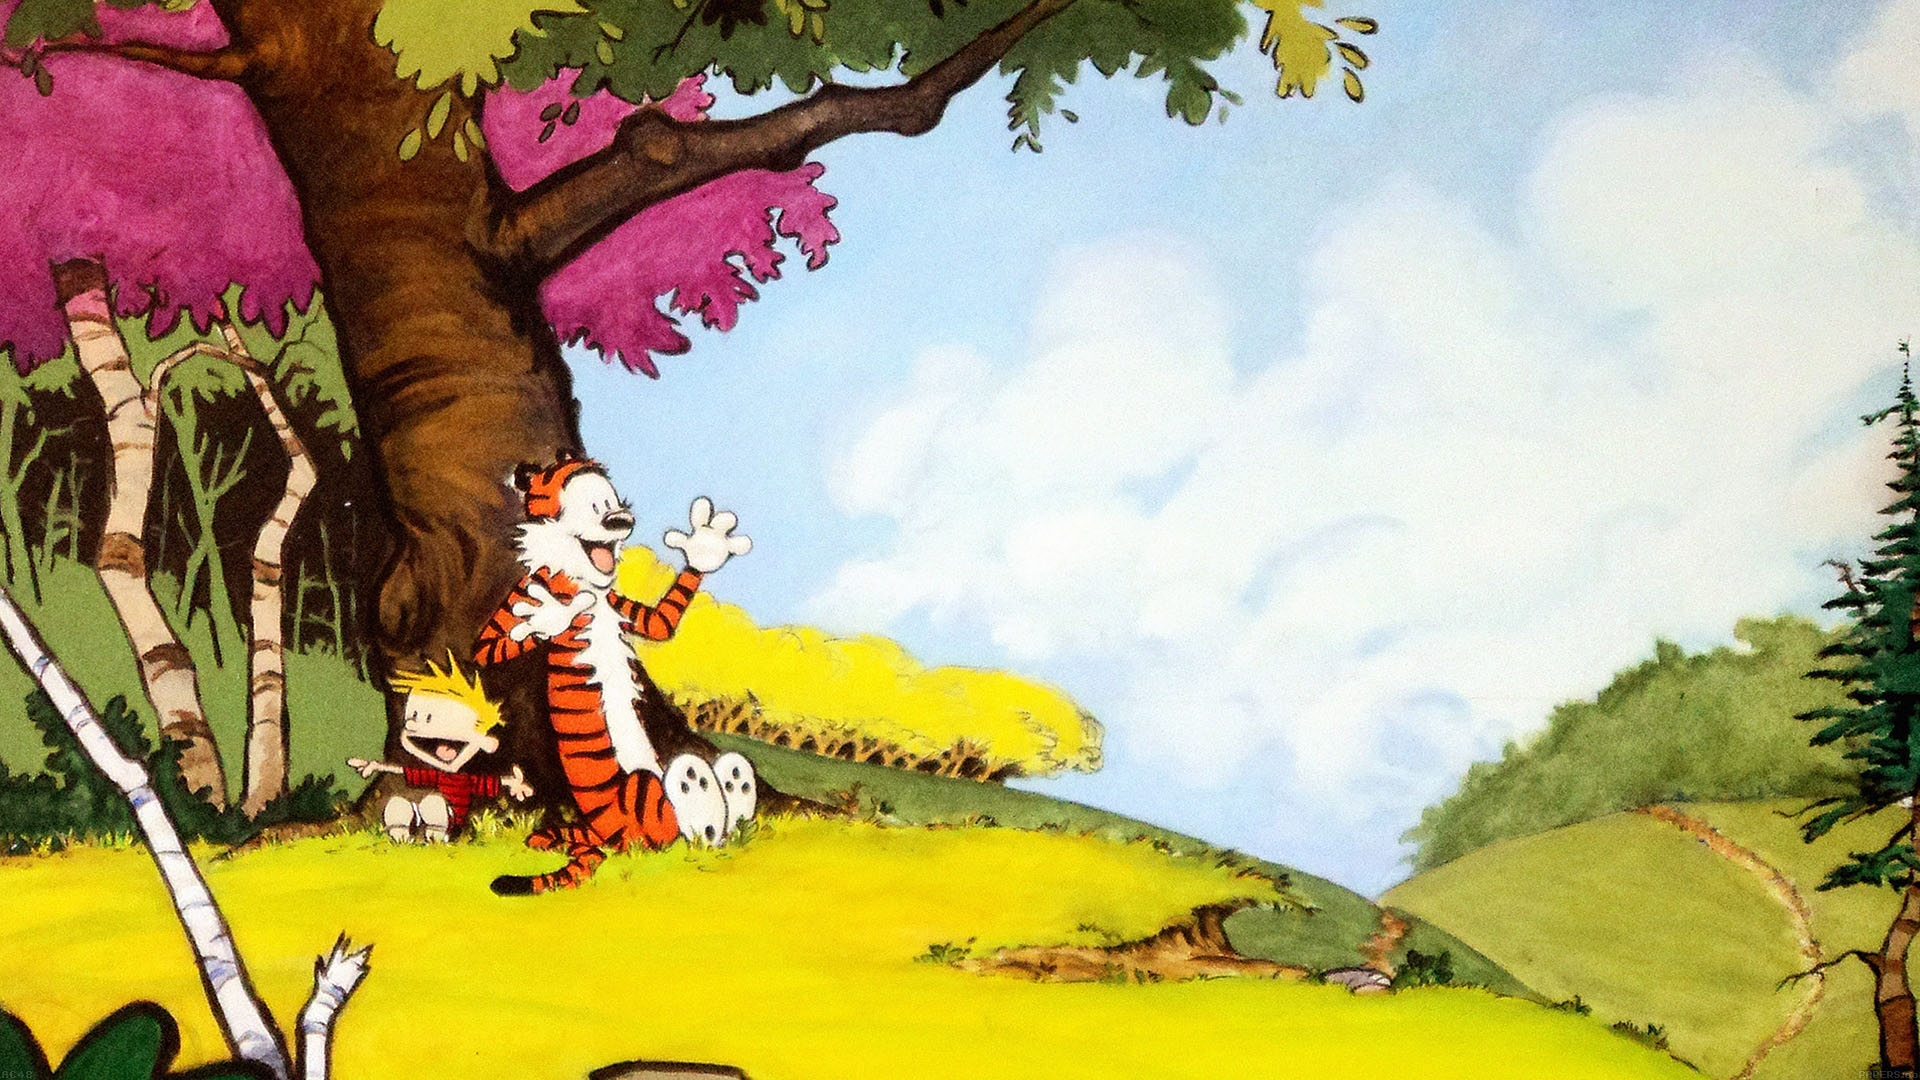 ac48-wallpaper-calvin-and-hobbes-after-nap